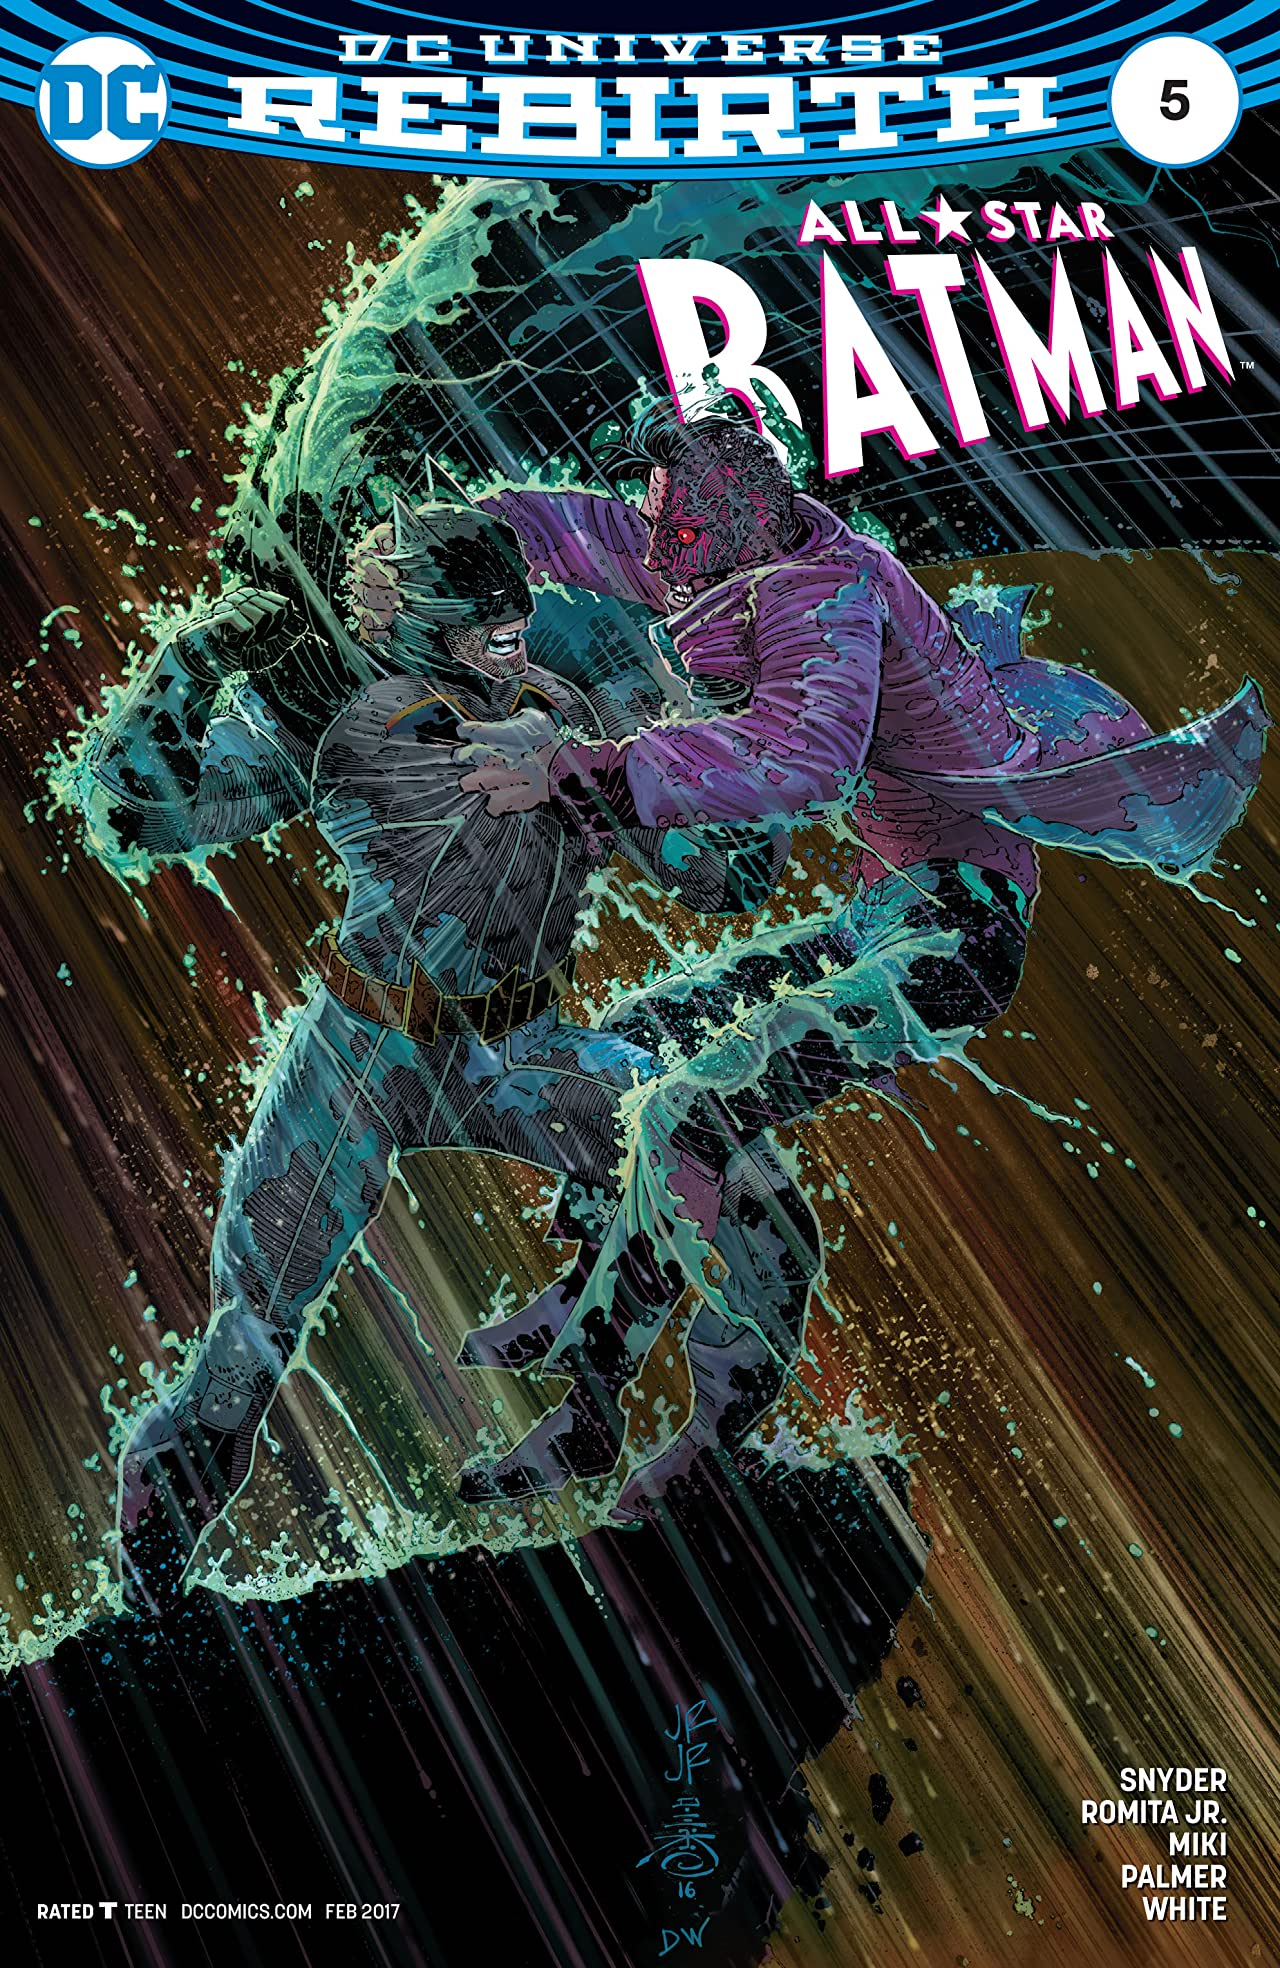 All-Star Batman (2016-2017) #5